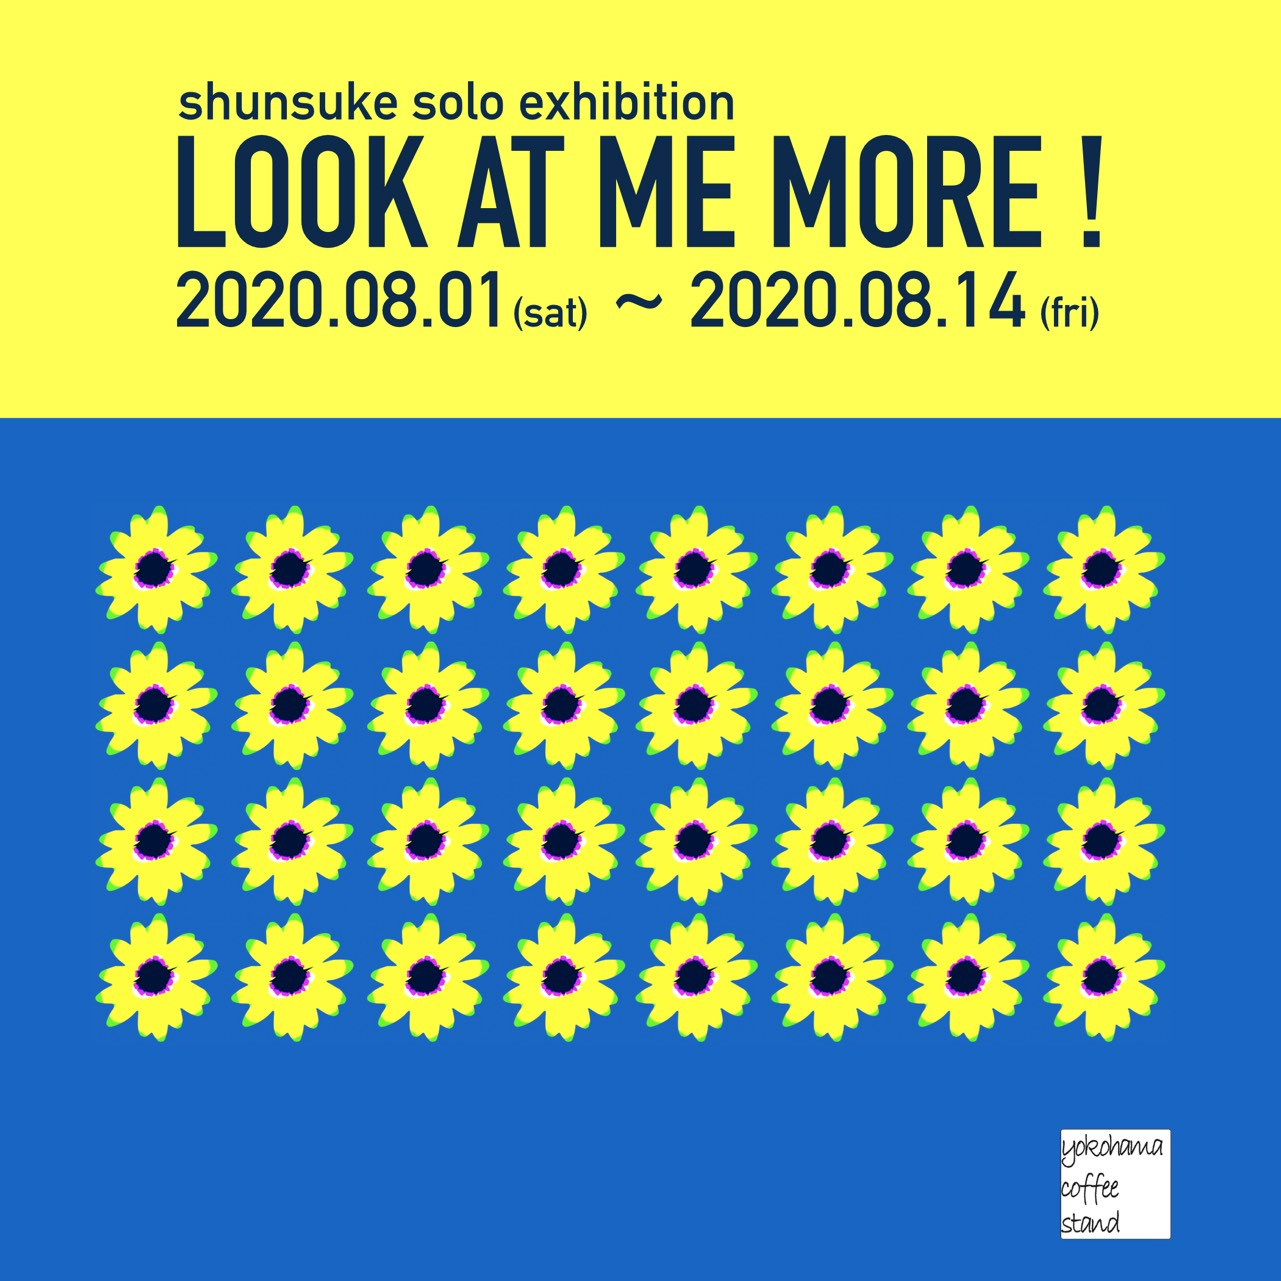 「LOOK AT ME MORE !」Shunsuke solo exhibition 開催のお知らせ